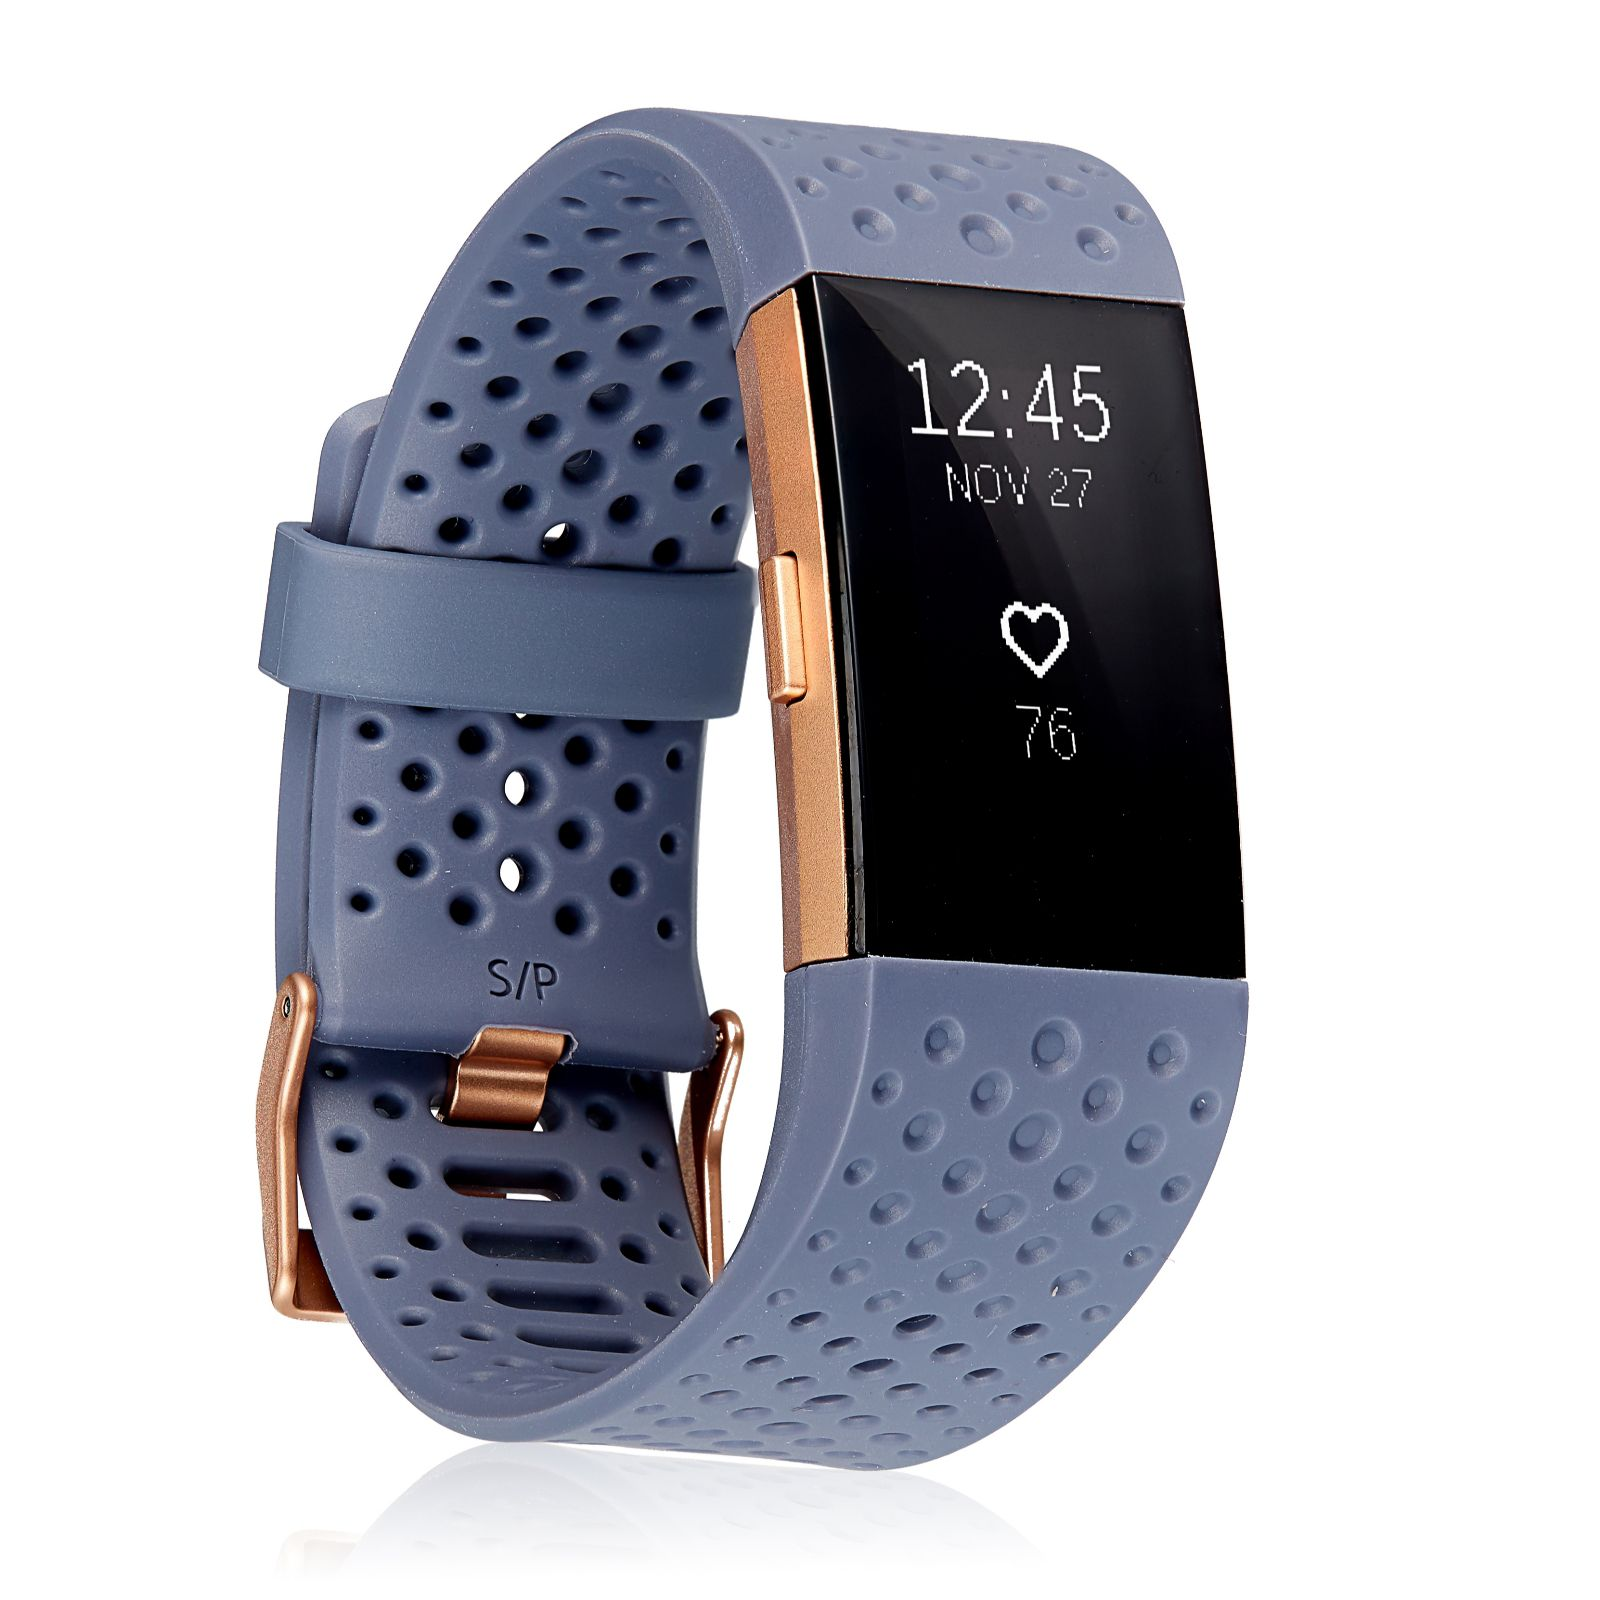 Fitbit Charge 2 Special Edition Activity & Sleep Tracker with HR Monitor -  QVC UK